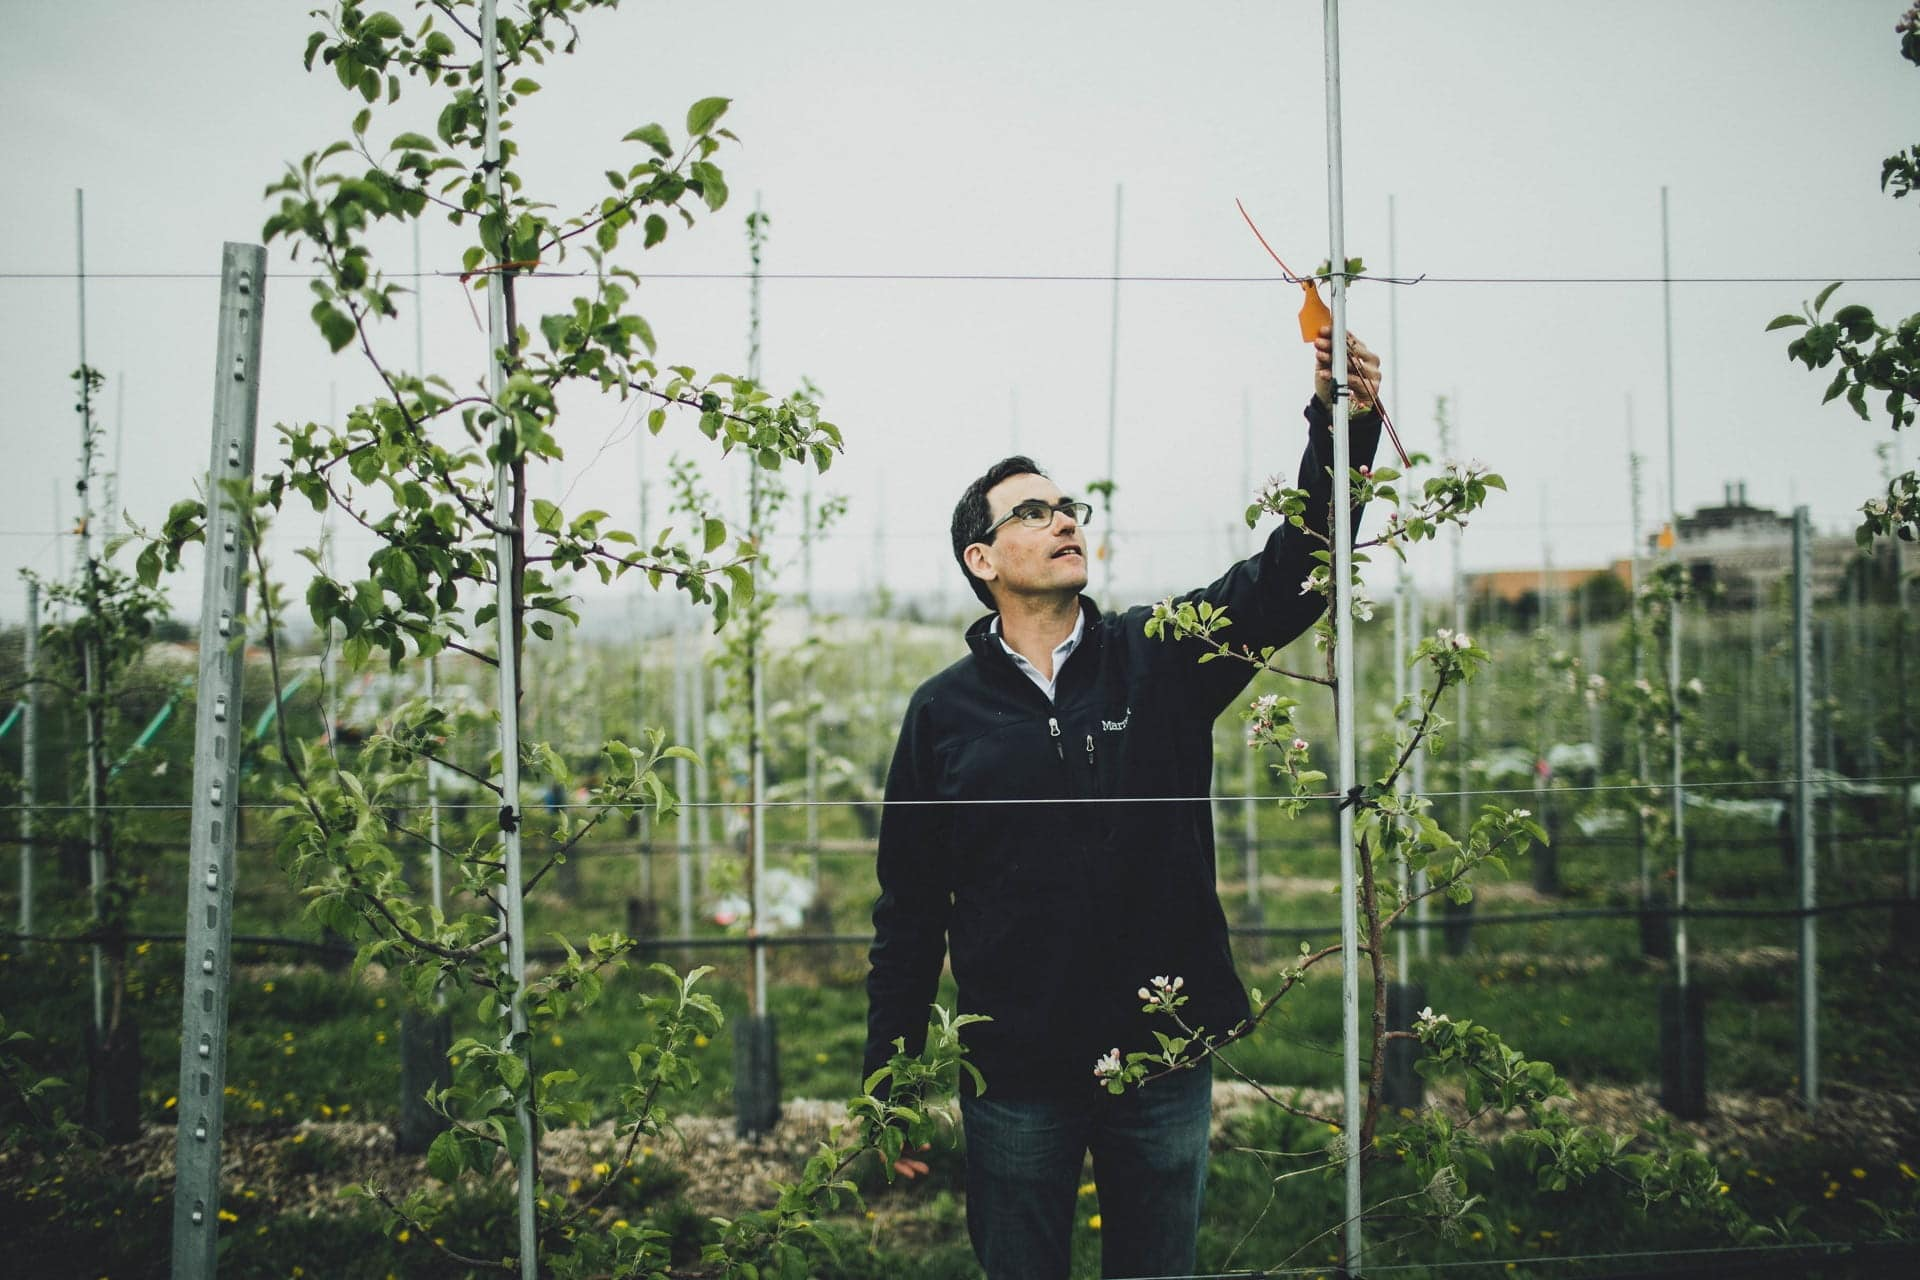 A person stands in an apple orchard reaching upwards